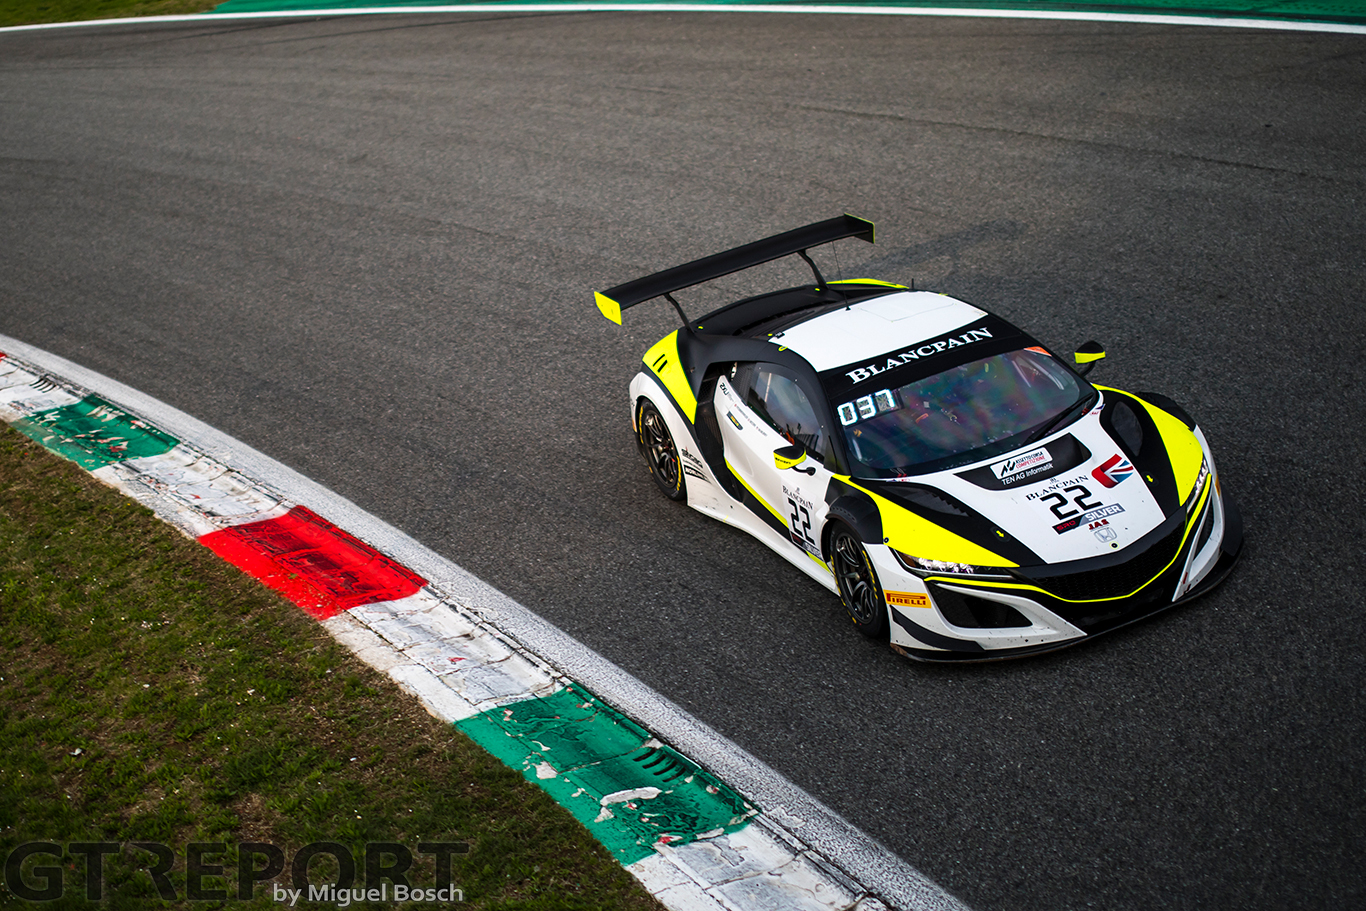 Spa 24 Hours preview: Honda